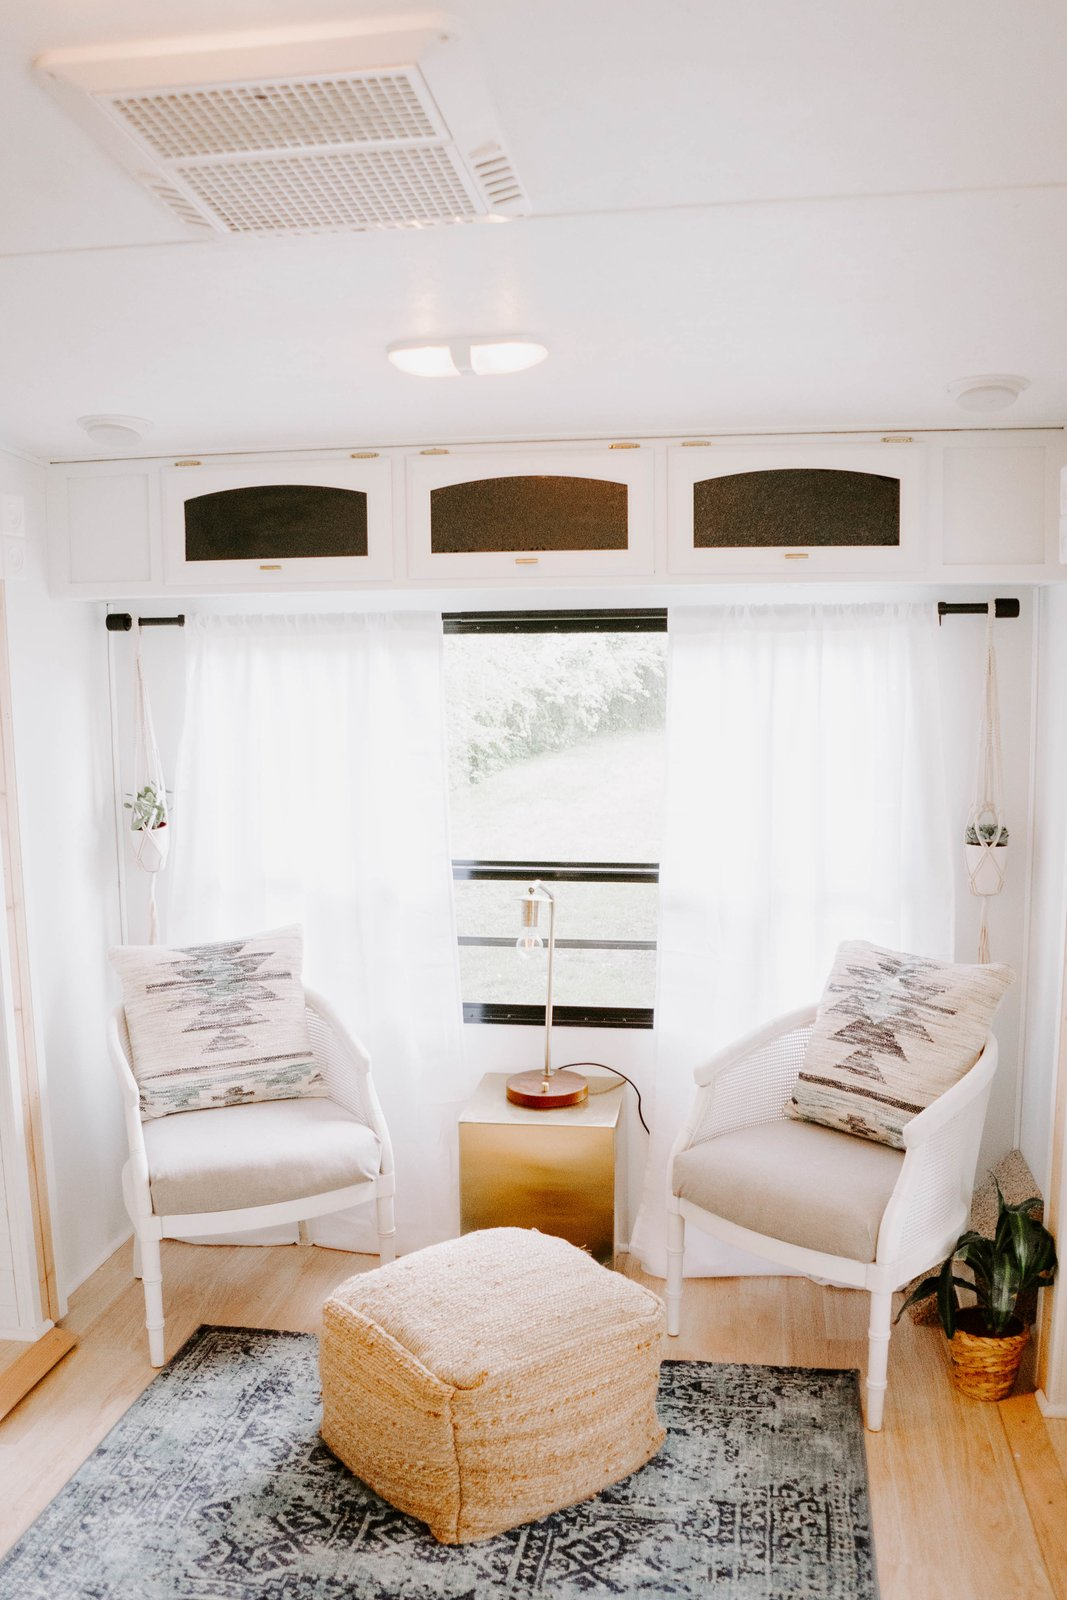 Living Room, Chair, Table Lighting, Light Hardwood Floor, Ottomans, Ceiling Lighting, Lamps, Rug Floor, and End Tables This area now makes a beautiful spot to curl up and read a book.    Photo 6 of 14 in Embark on Your Next Road Trip in This Renovated Camper For $35K from The Cougar